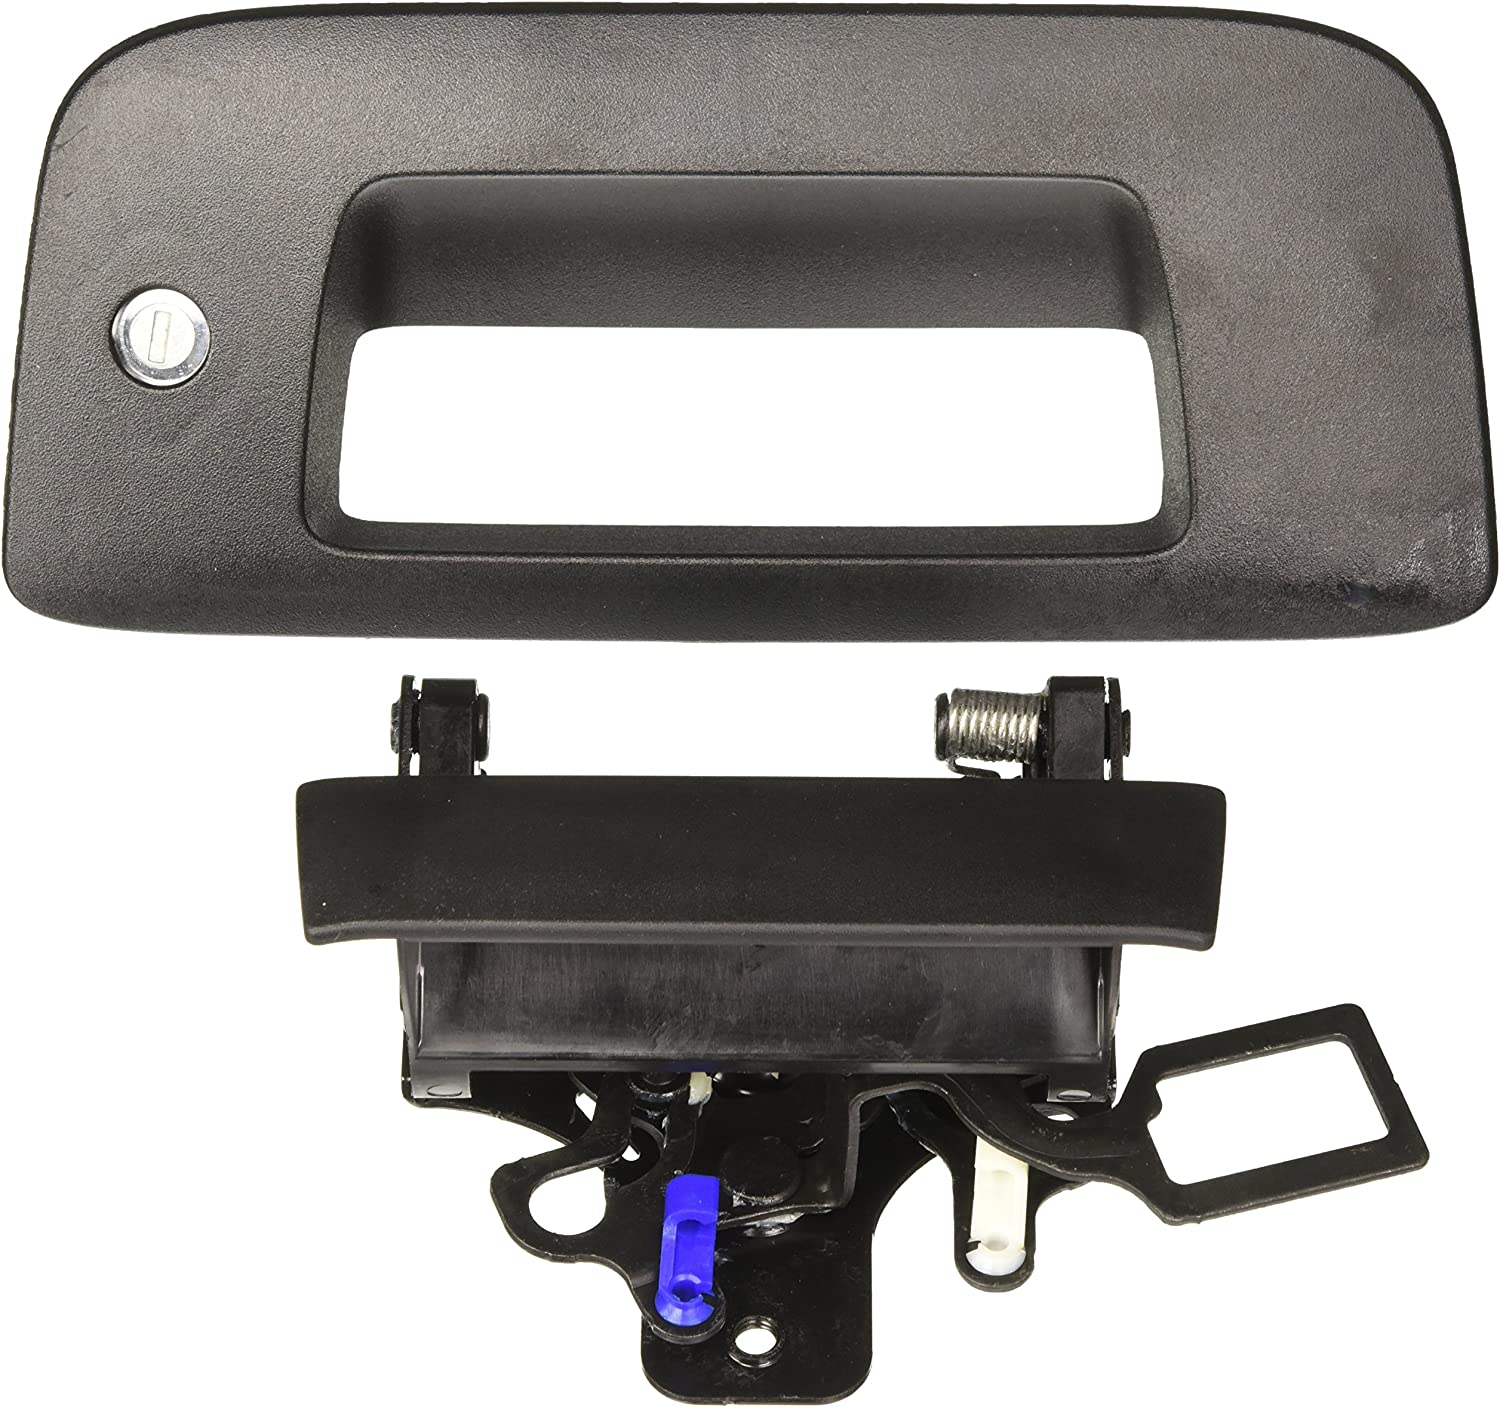 NEW GM TAILGATE HANDLE BEZEL WITH REAR CAMERA /& TG LOCK OPTIONS GM# 22755304